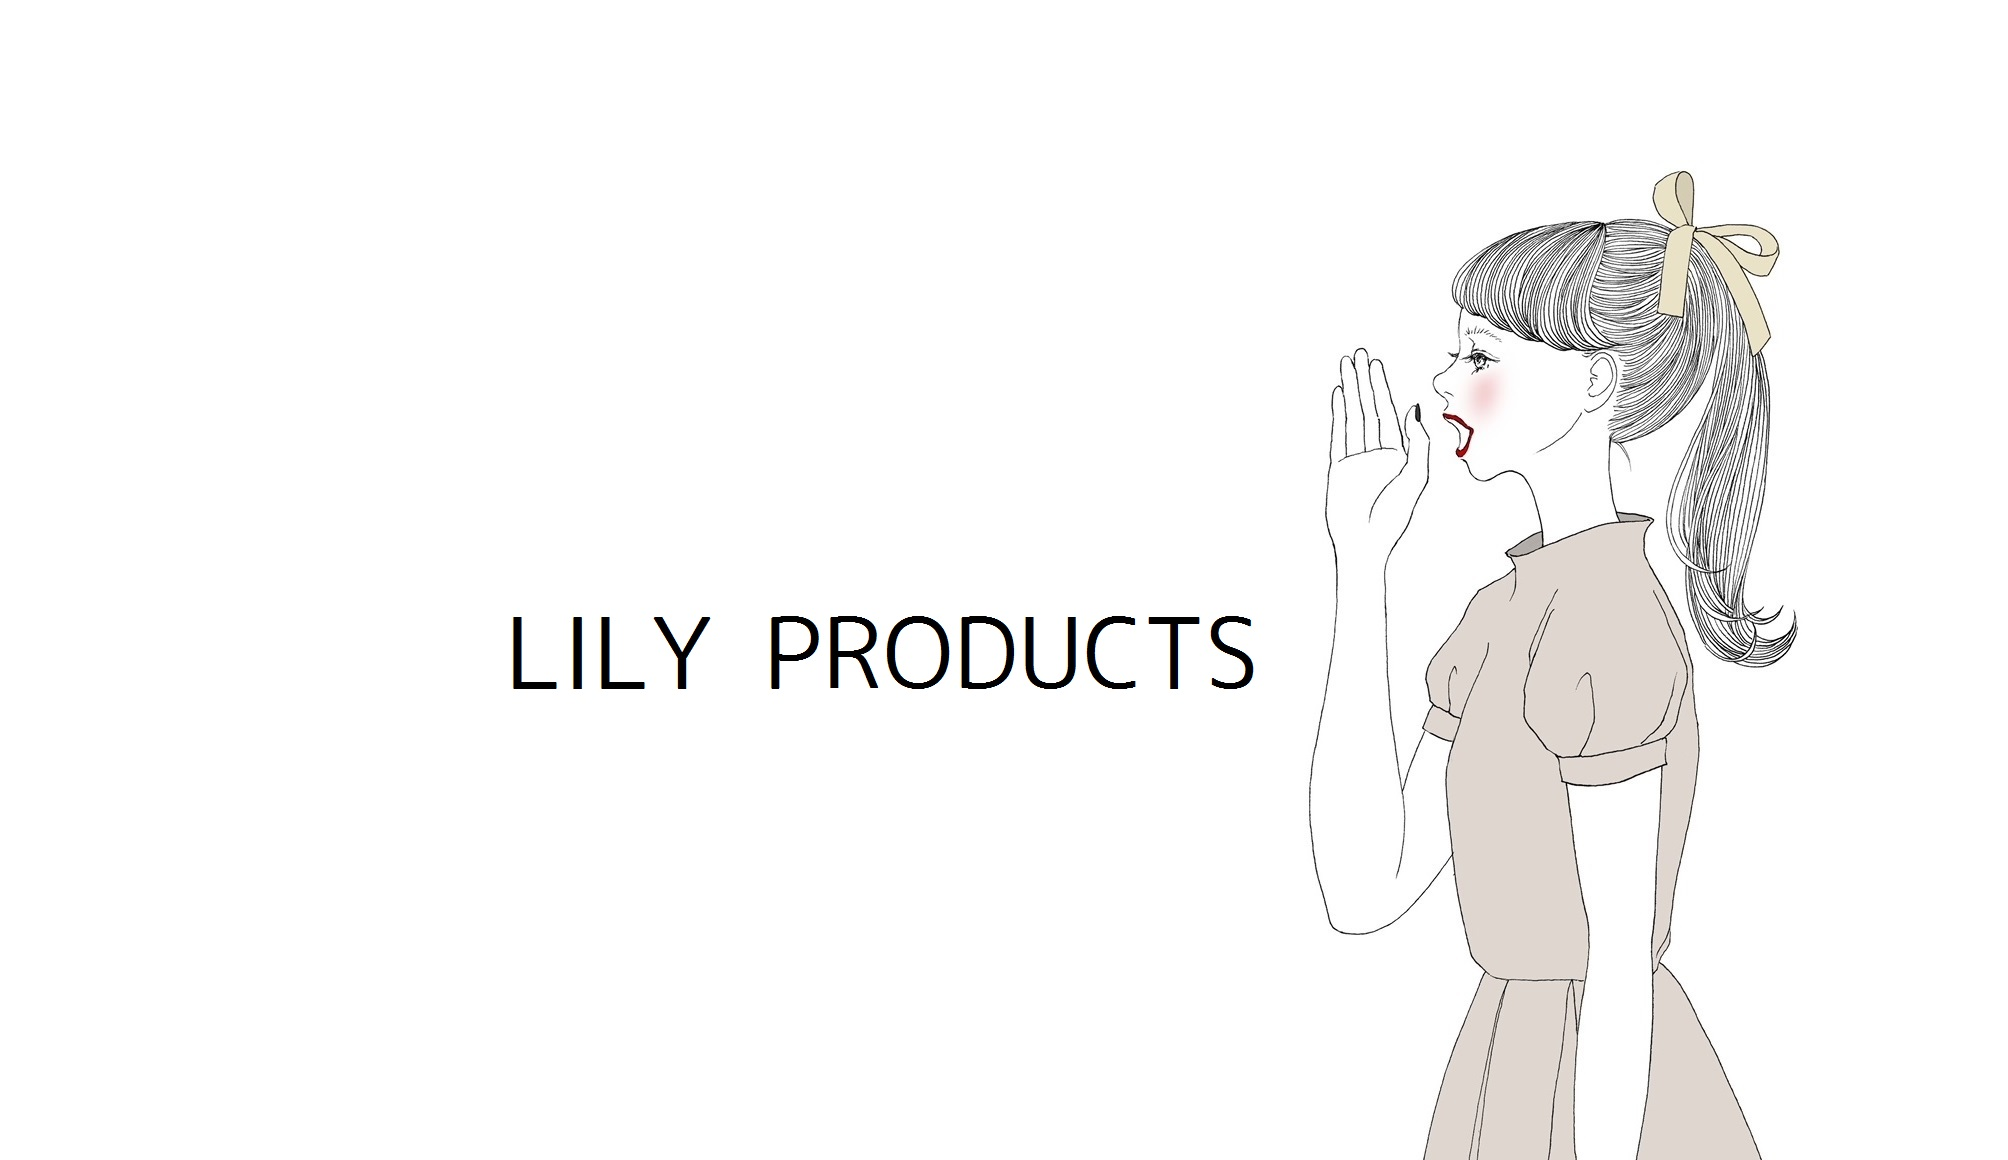 LILY PRODUCTS